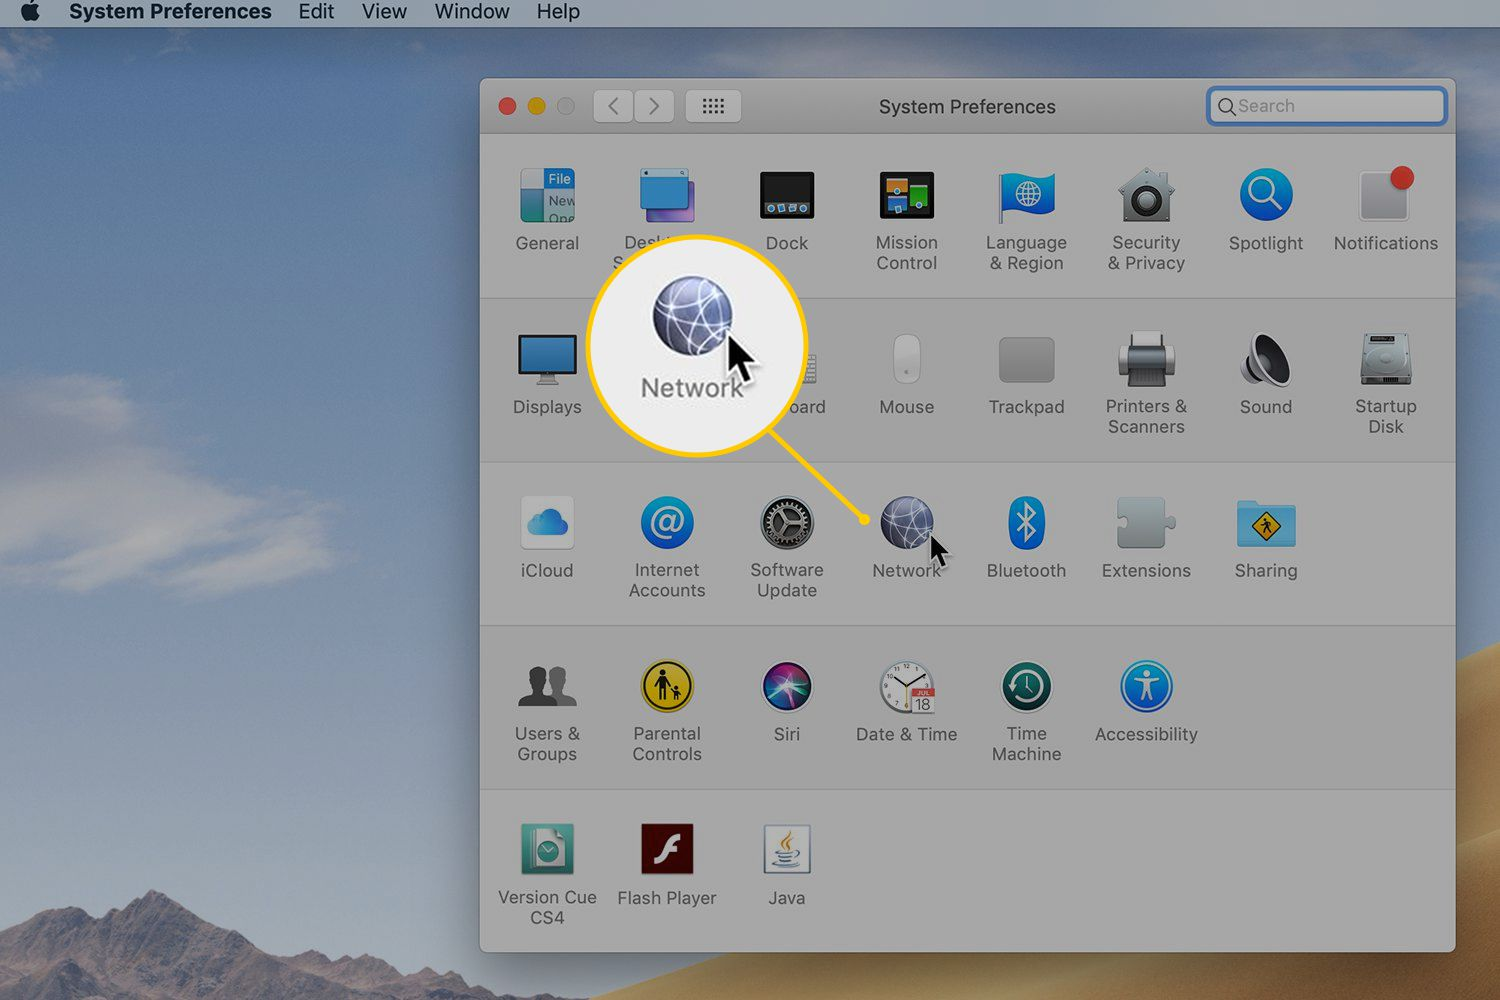 Network in macOS System Preferences